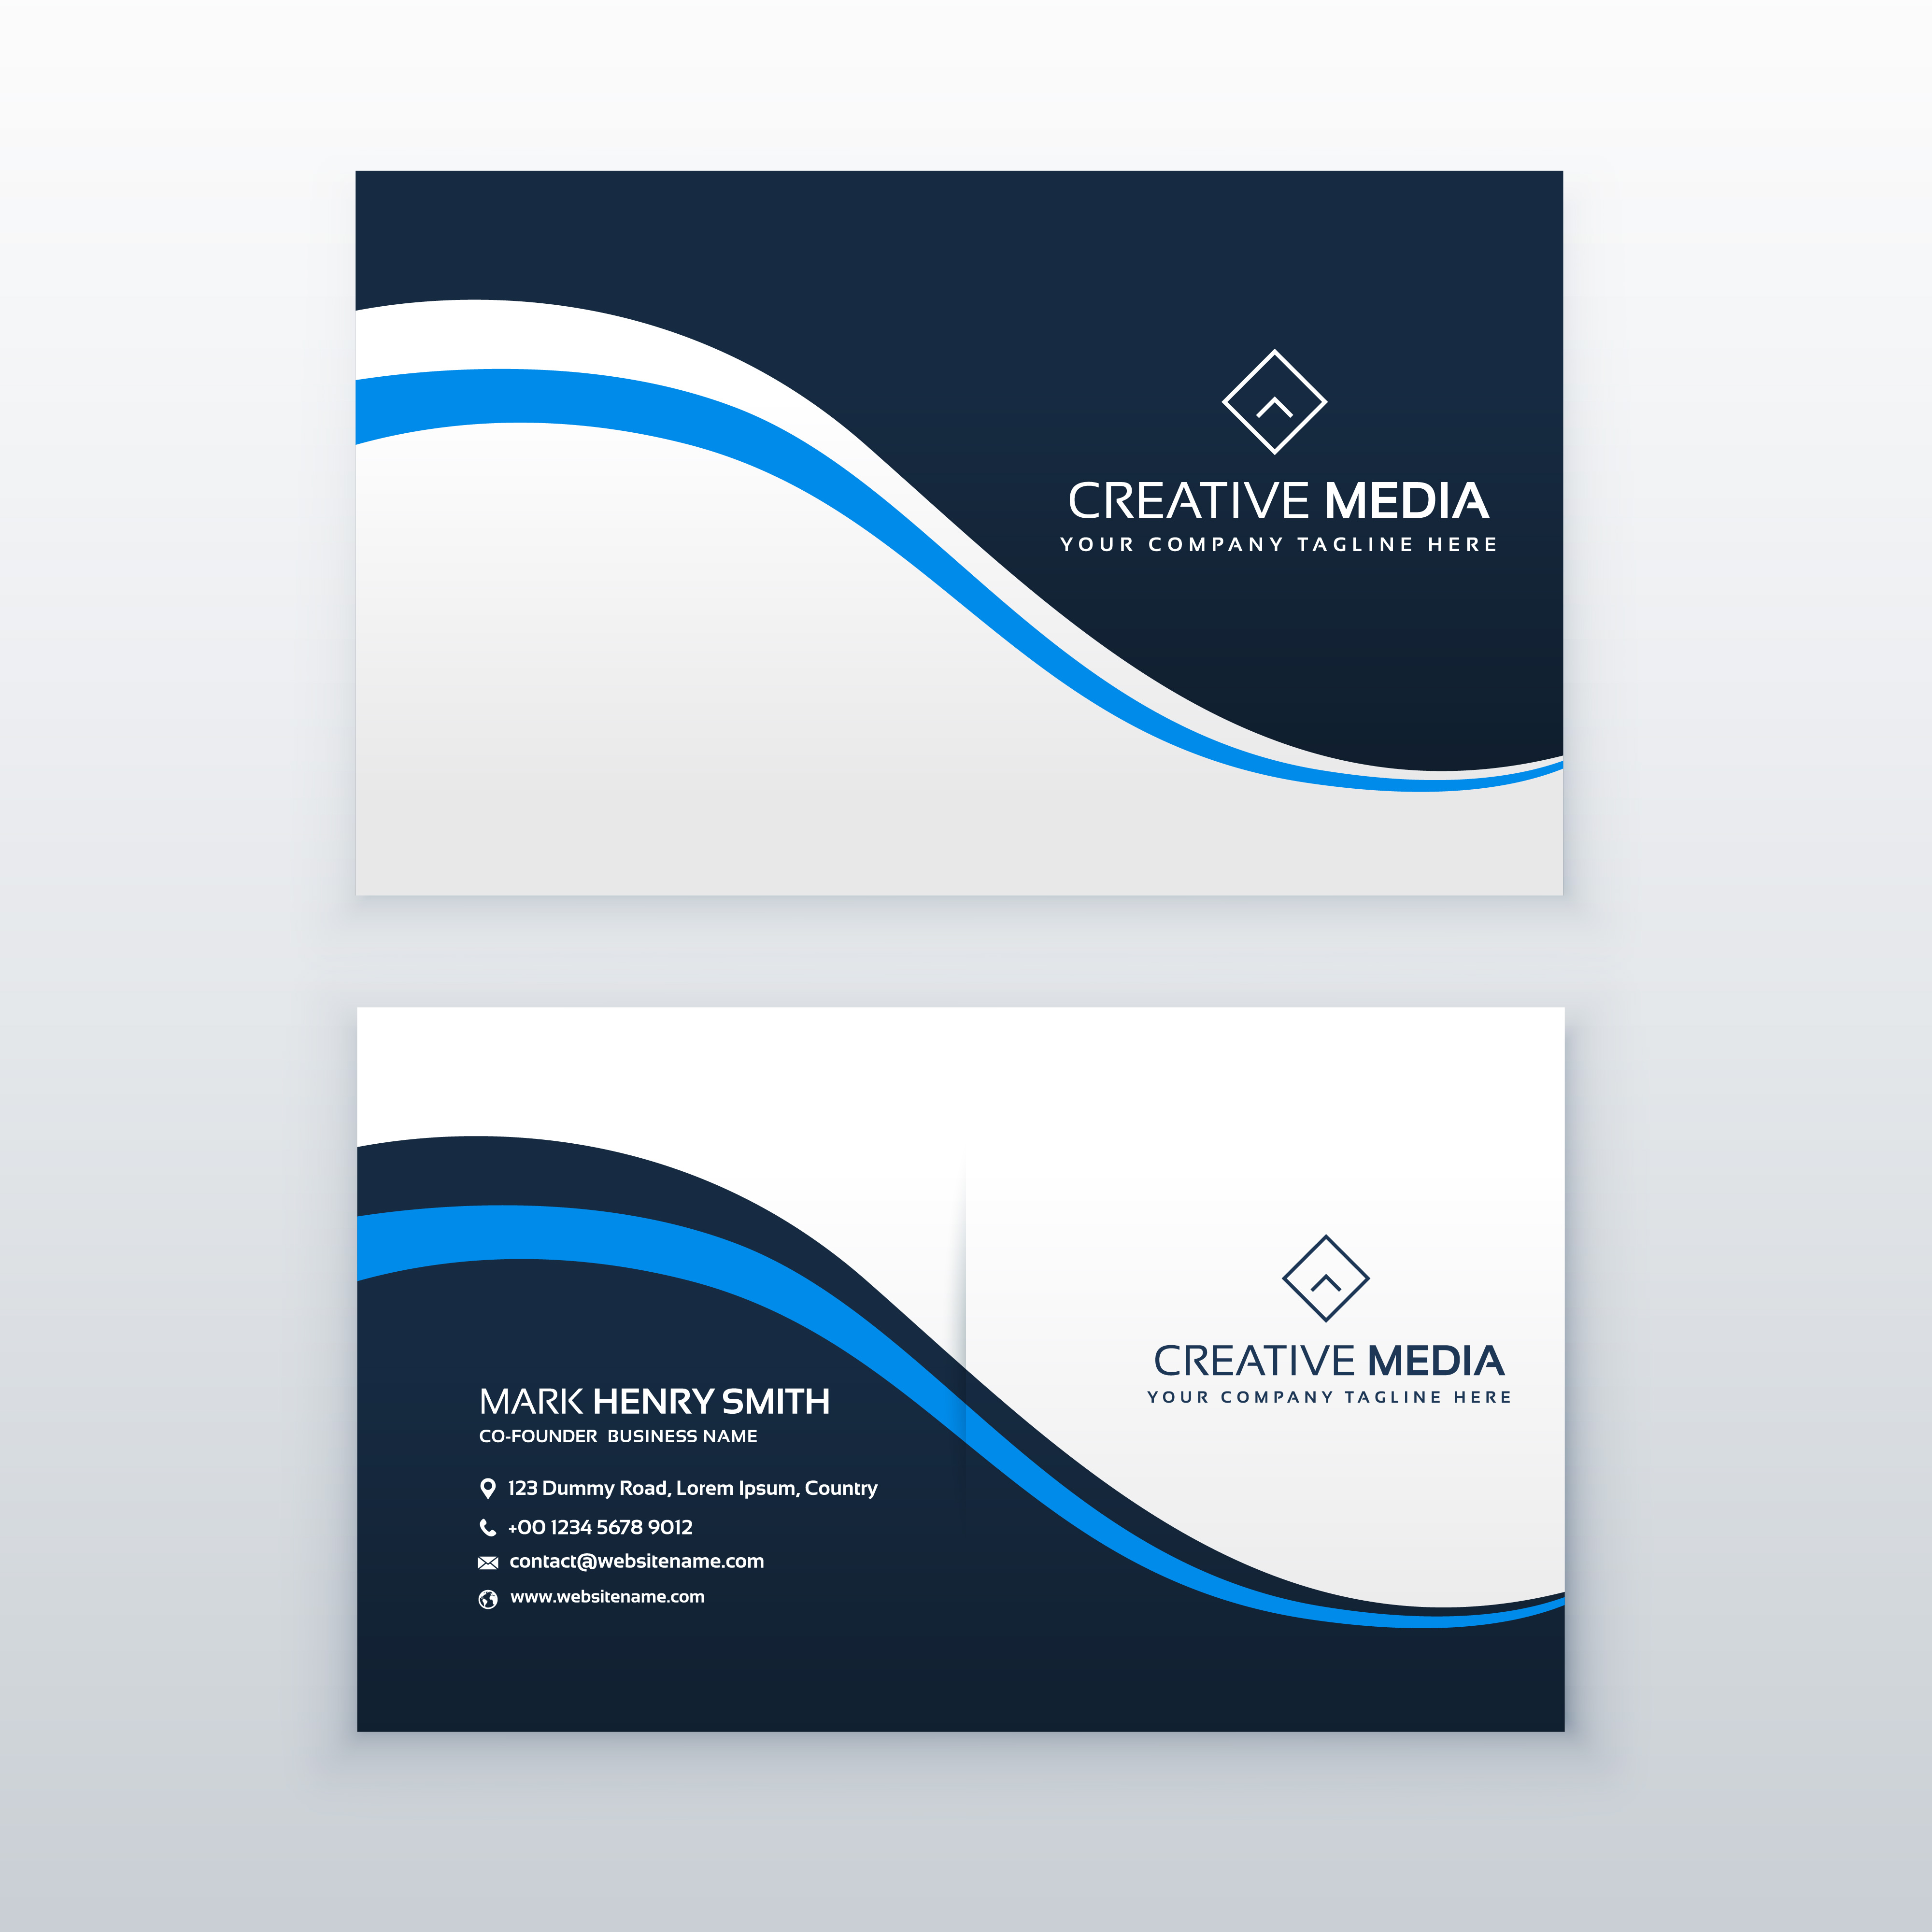 professional business card design with blue wave Download Free Vector Art Stock Graphics & Images